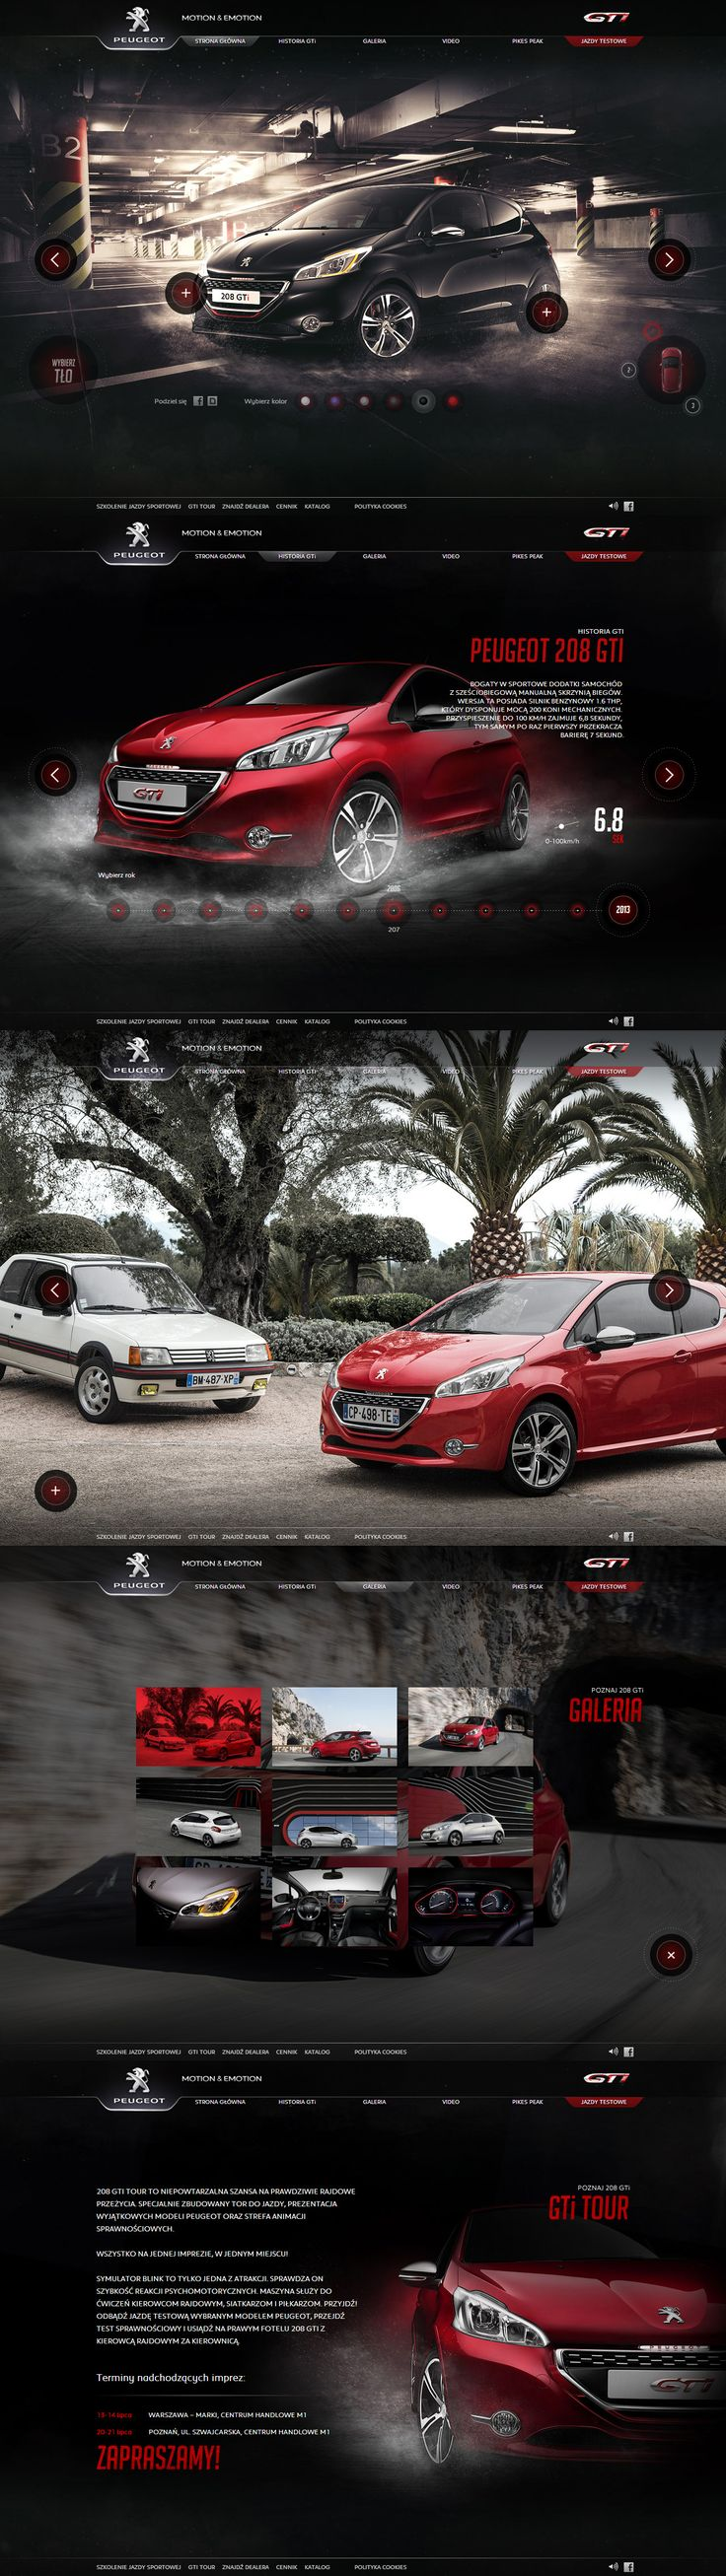 GTi is back! - Peugot 208 GTI website by Kuba Bogaczyński (Charakterny) via Behance http://208gti.peugeot.pl/